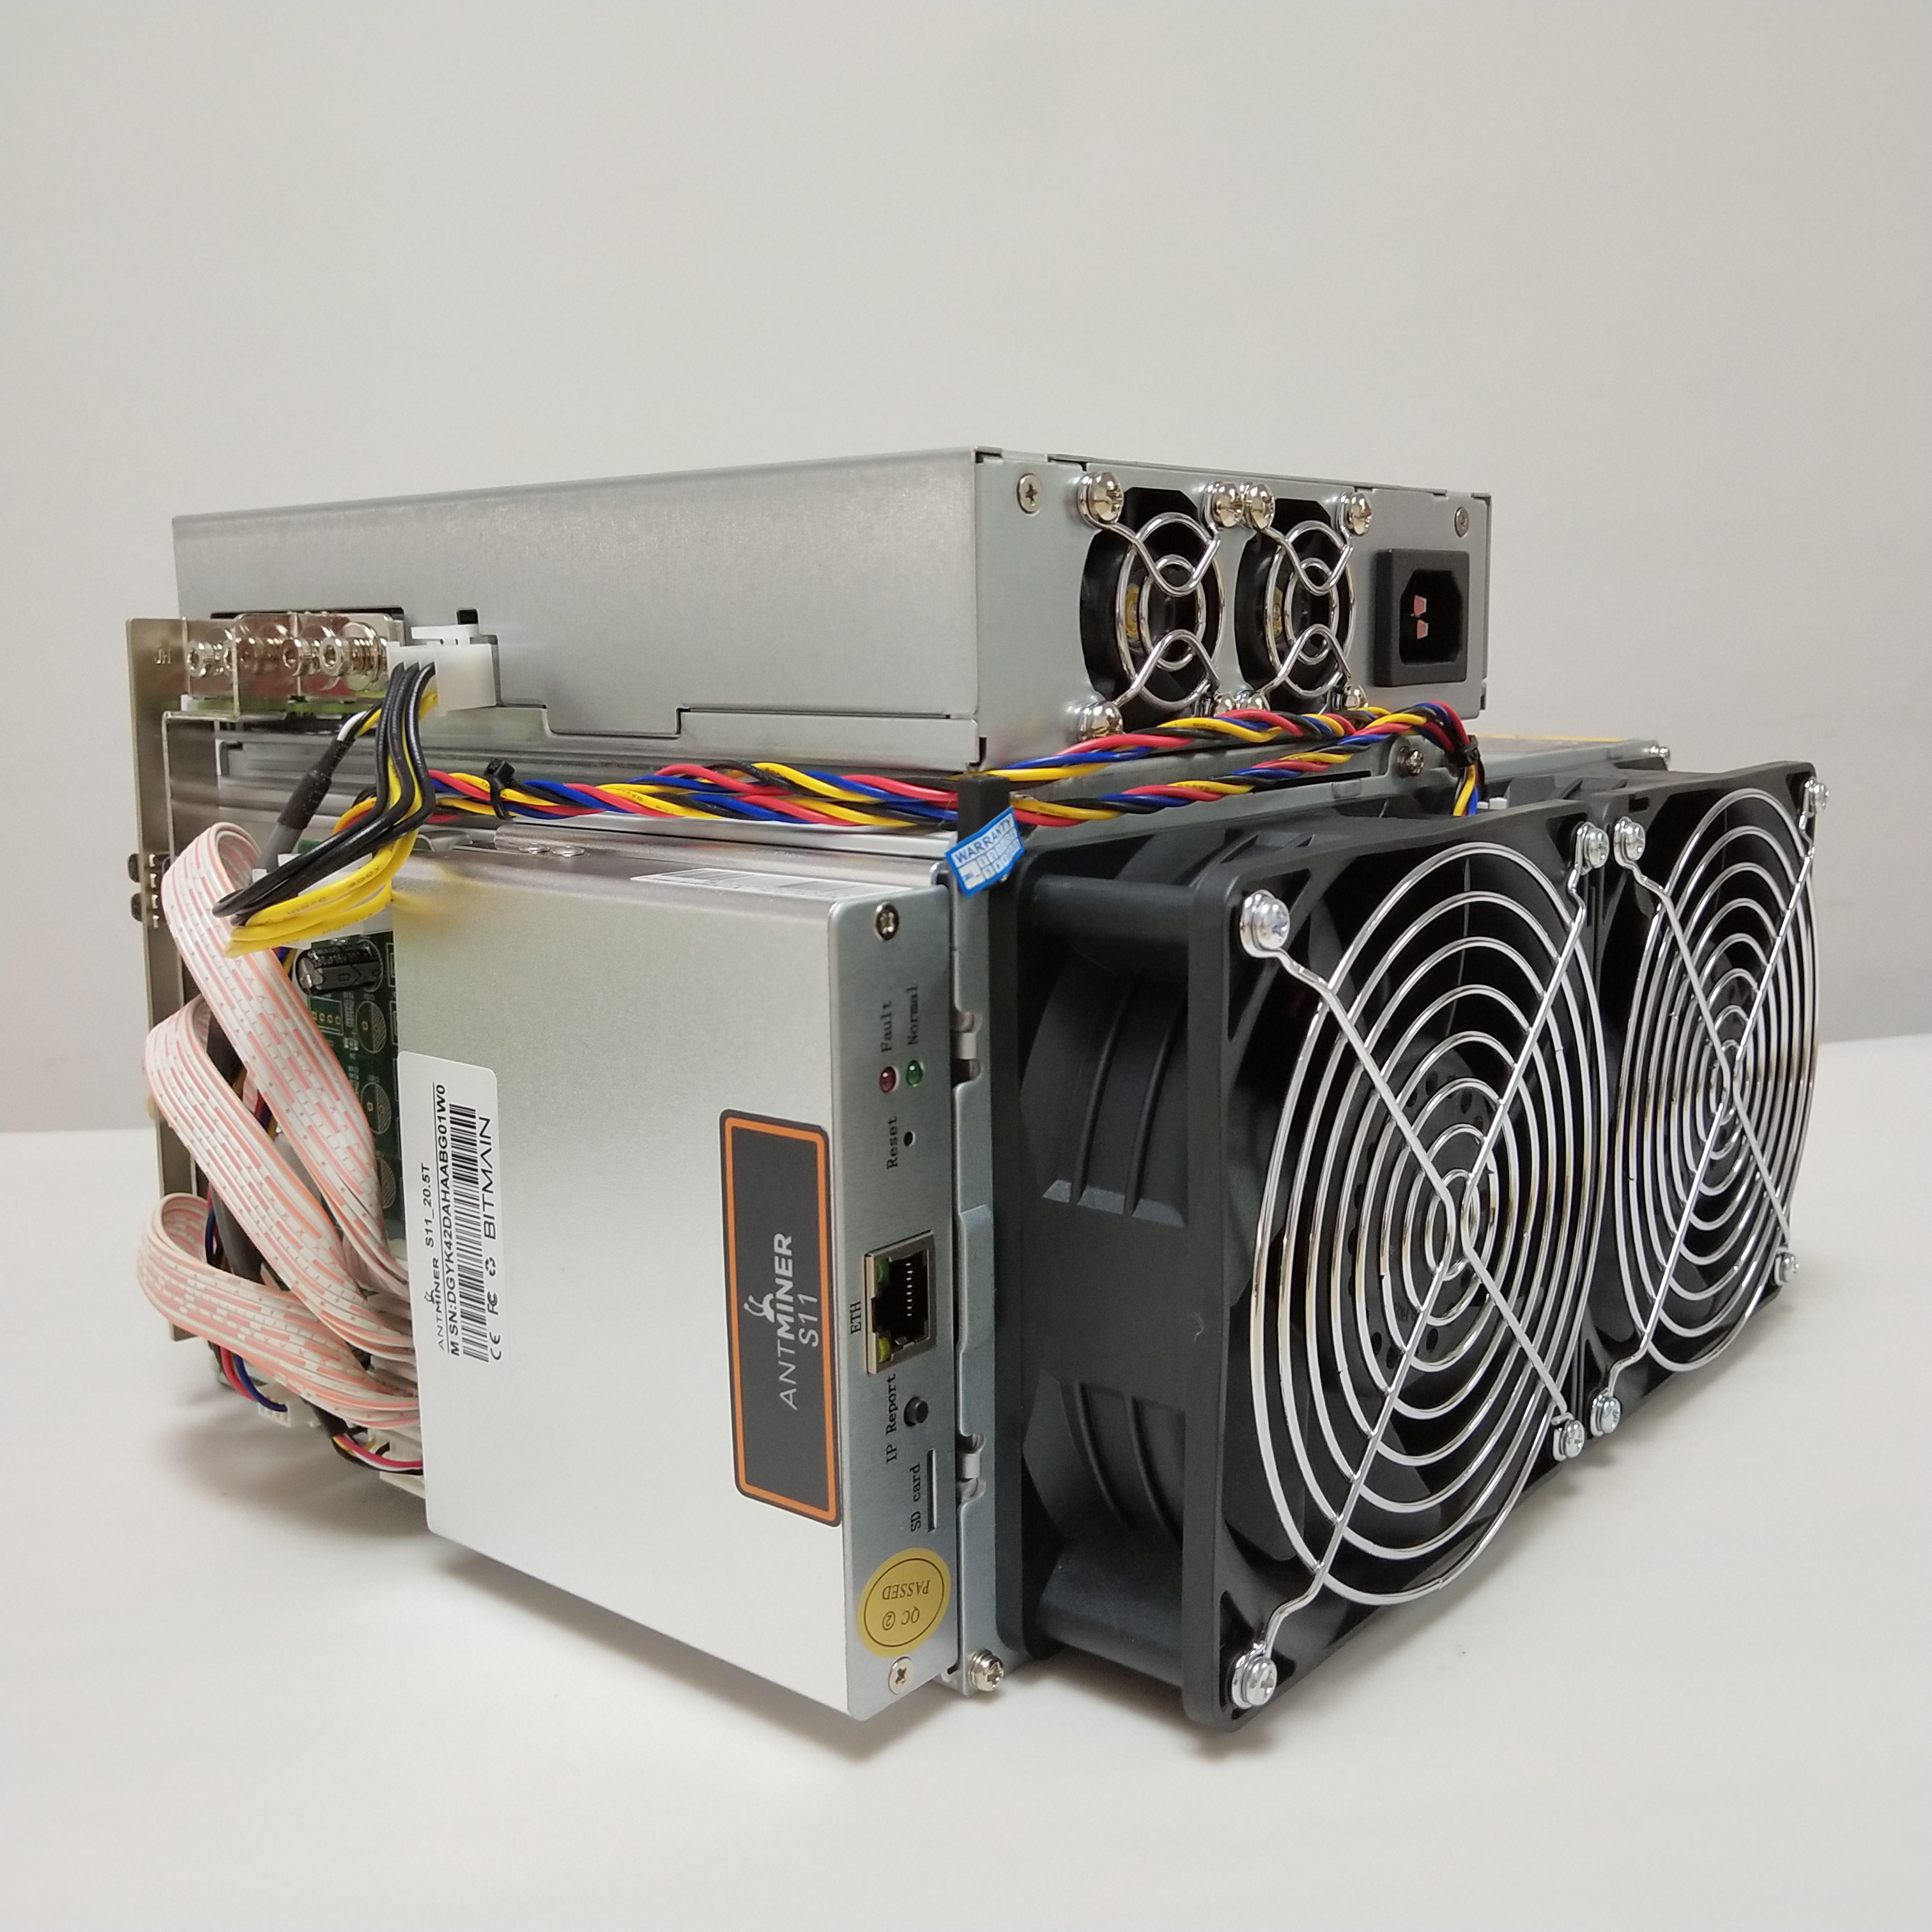 Tomax Antminer S11 20 5T Antminer S11 Bitcoin Miner Antminer S11 Asic  Miner, View antminer s11 bitcoin mining machine bitcoin miner antminer S11